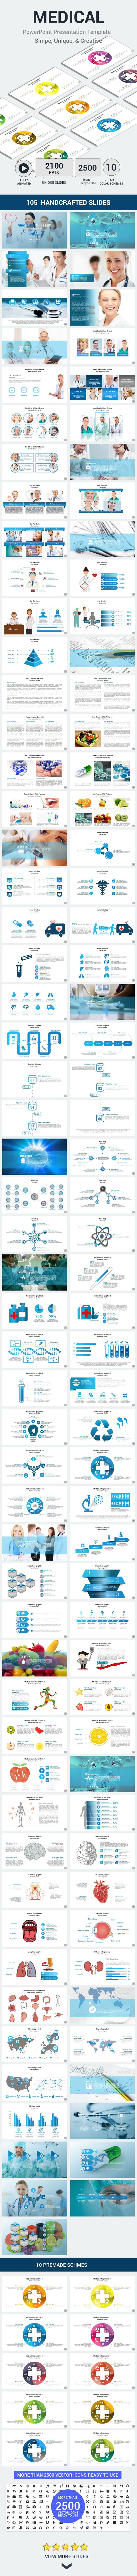 Medical PowerPoint Presentation Template #design #slides Download: http://graphicriver.net/item/medical-powerpoint-presentation-template/14387130?ref=ksioks